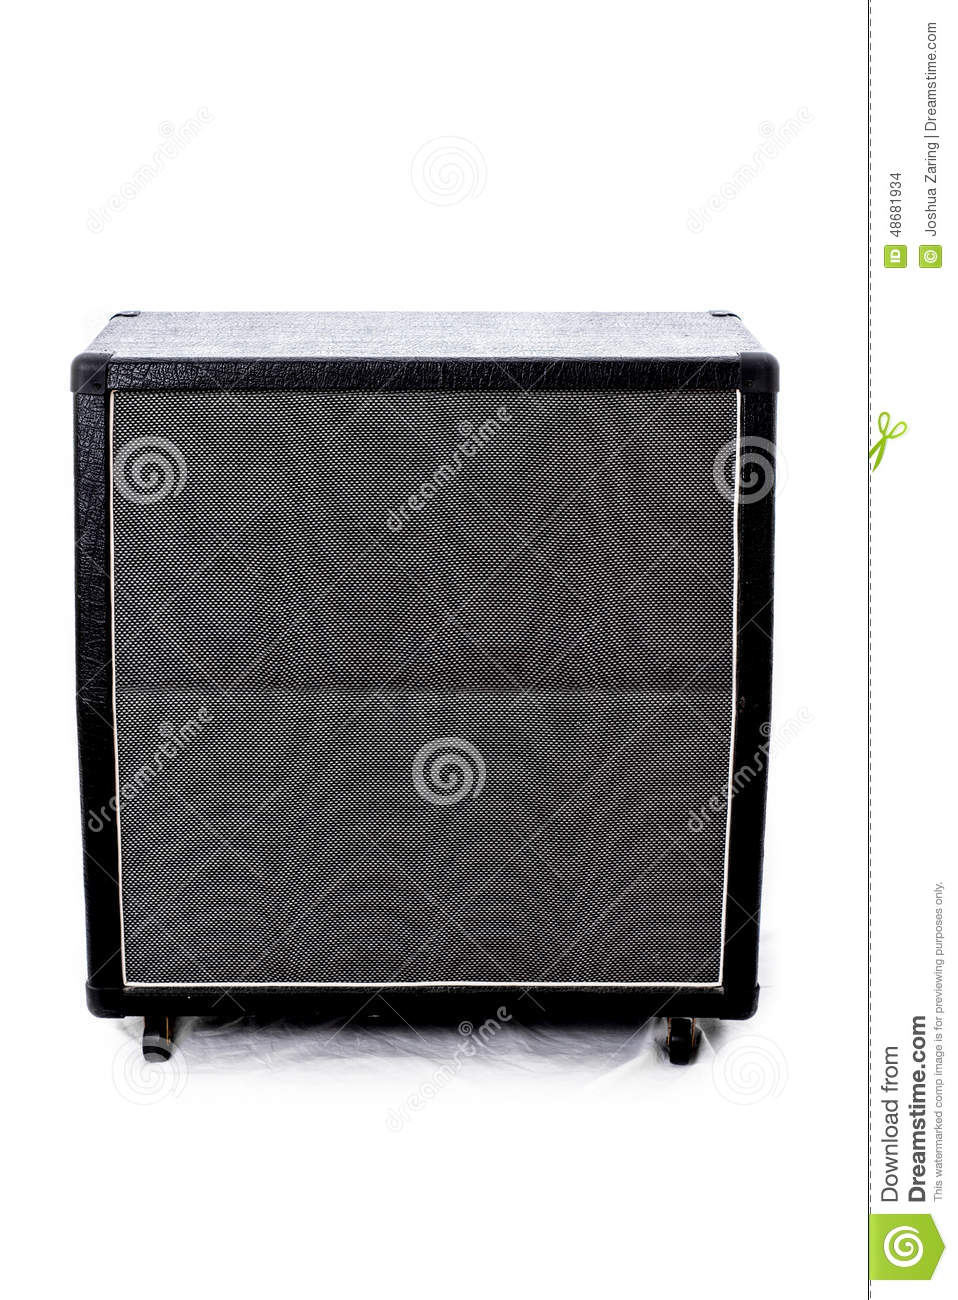 Guitar Amp Cabinet Stock Photo - Image: 48681934